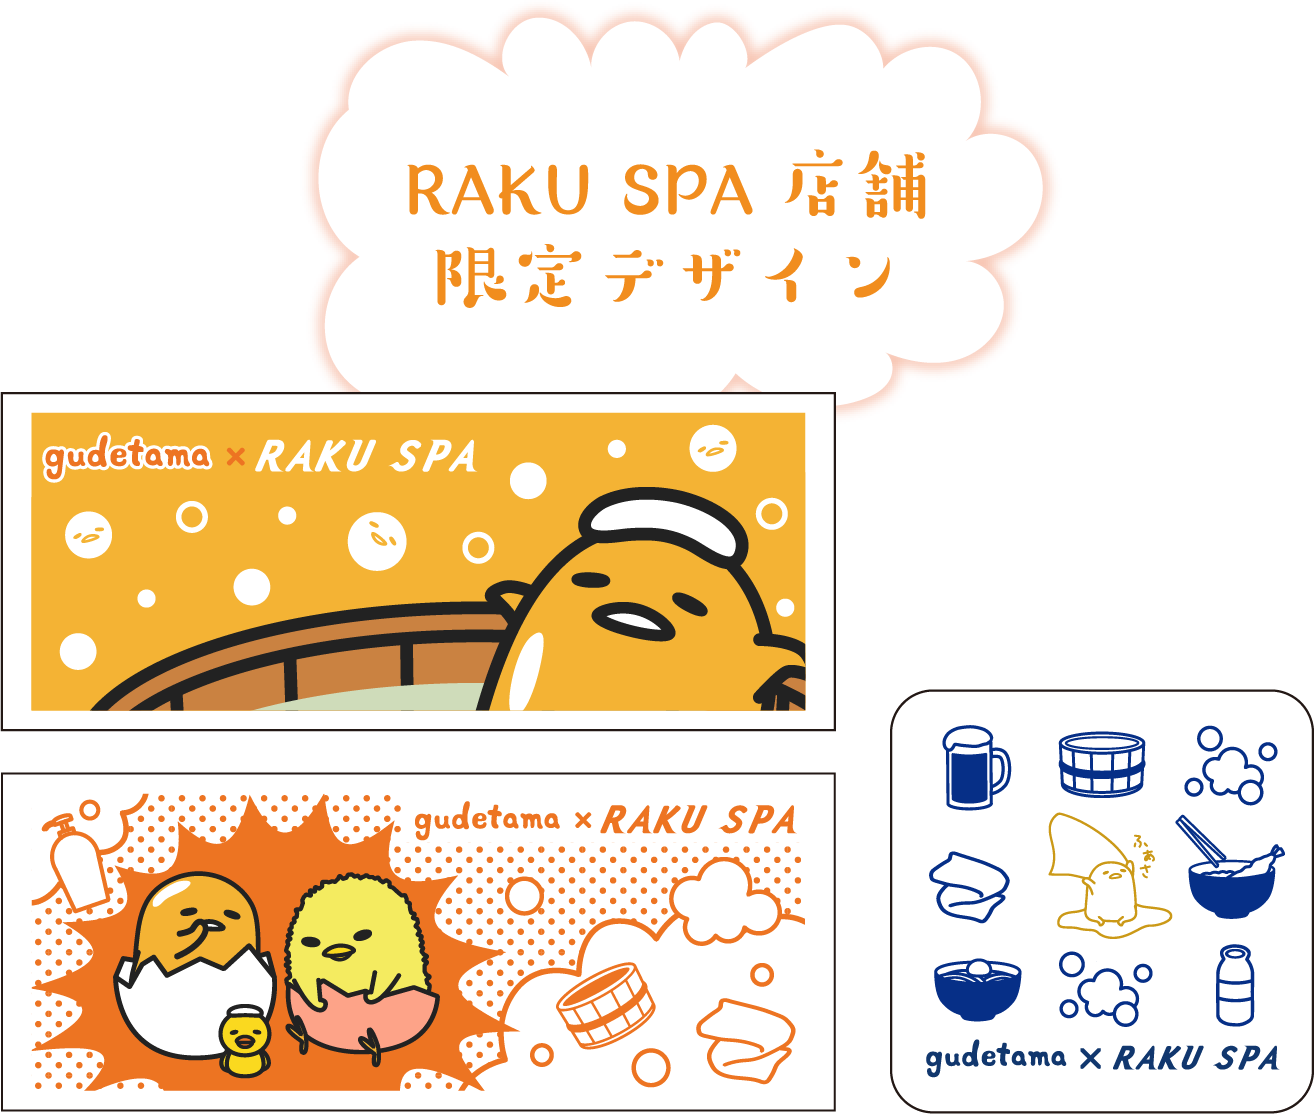 RAKU SPA Location Exclusive Face & Hand Towels  Face Towels 2 designs (フェイスタオル 2種): ¥620 Hand Towel 1 design (ハンドタオル 1種): ¥310